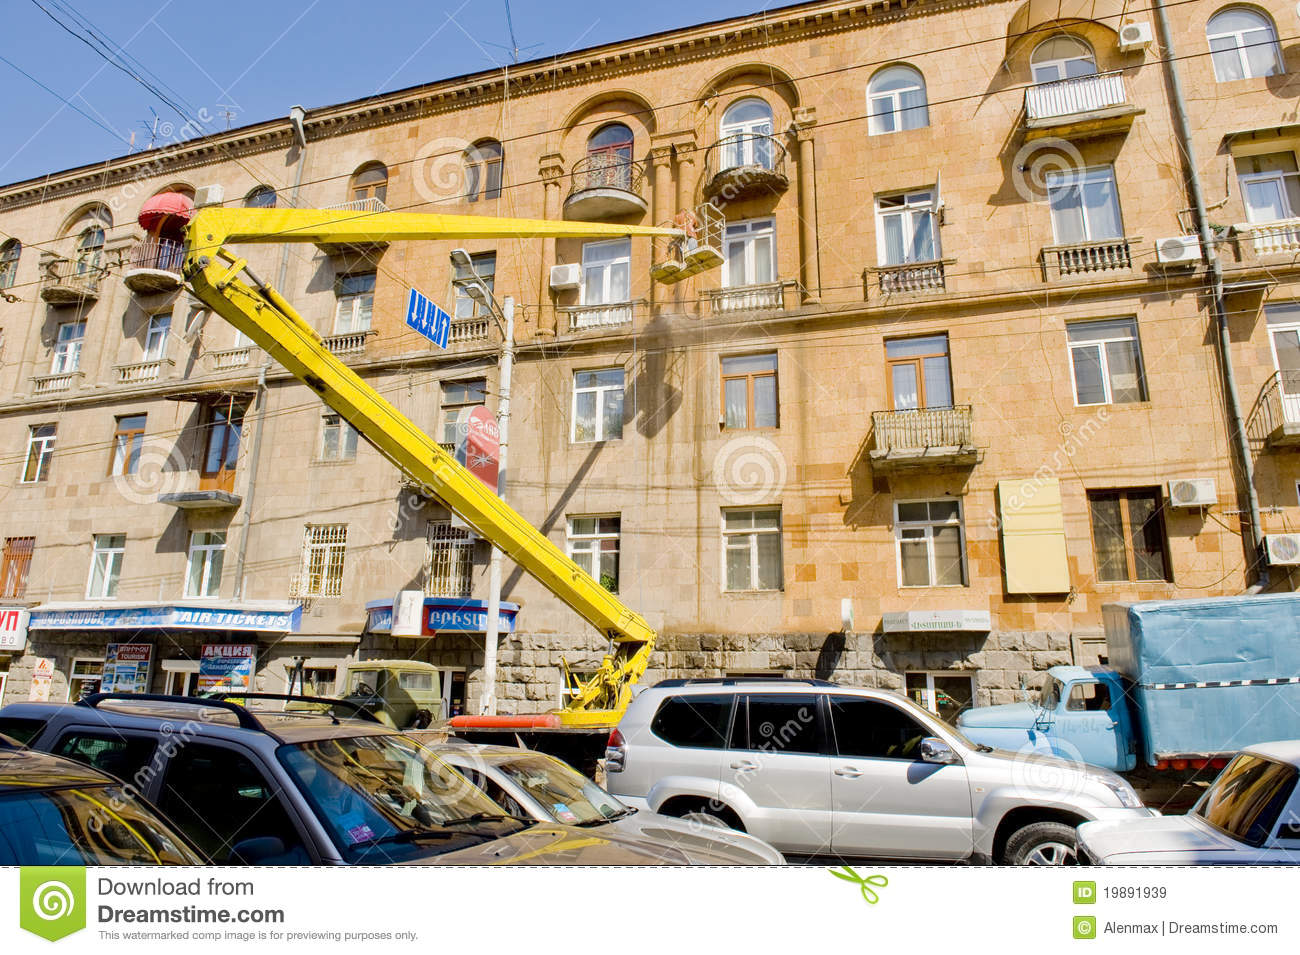 Nettoyage de construction image stock ditorial image - Nettoyage chantier construction maison ...